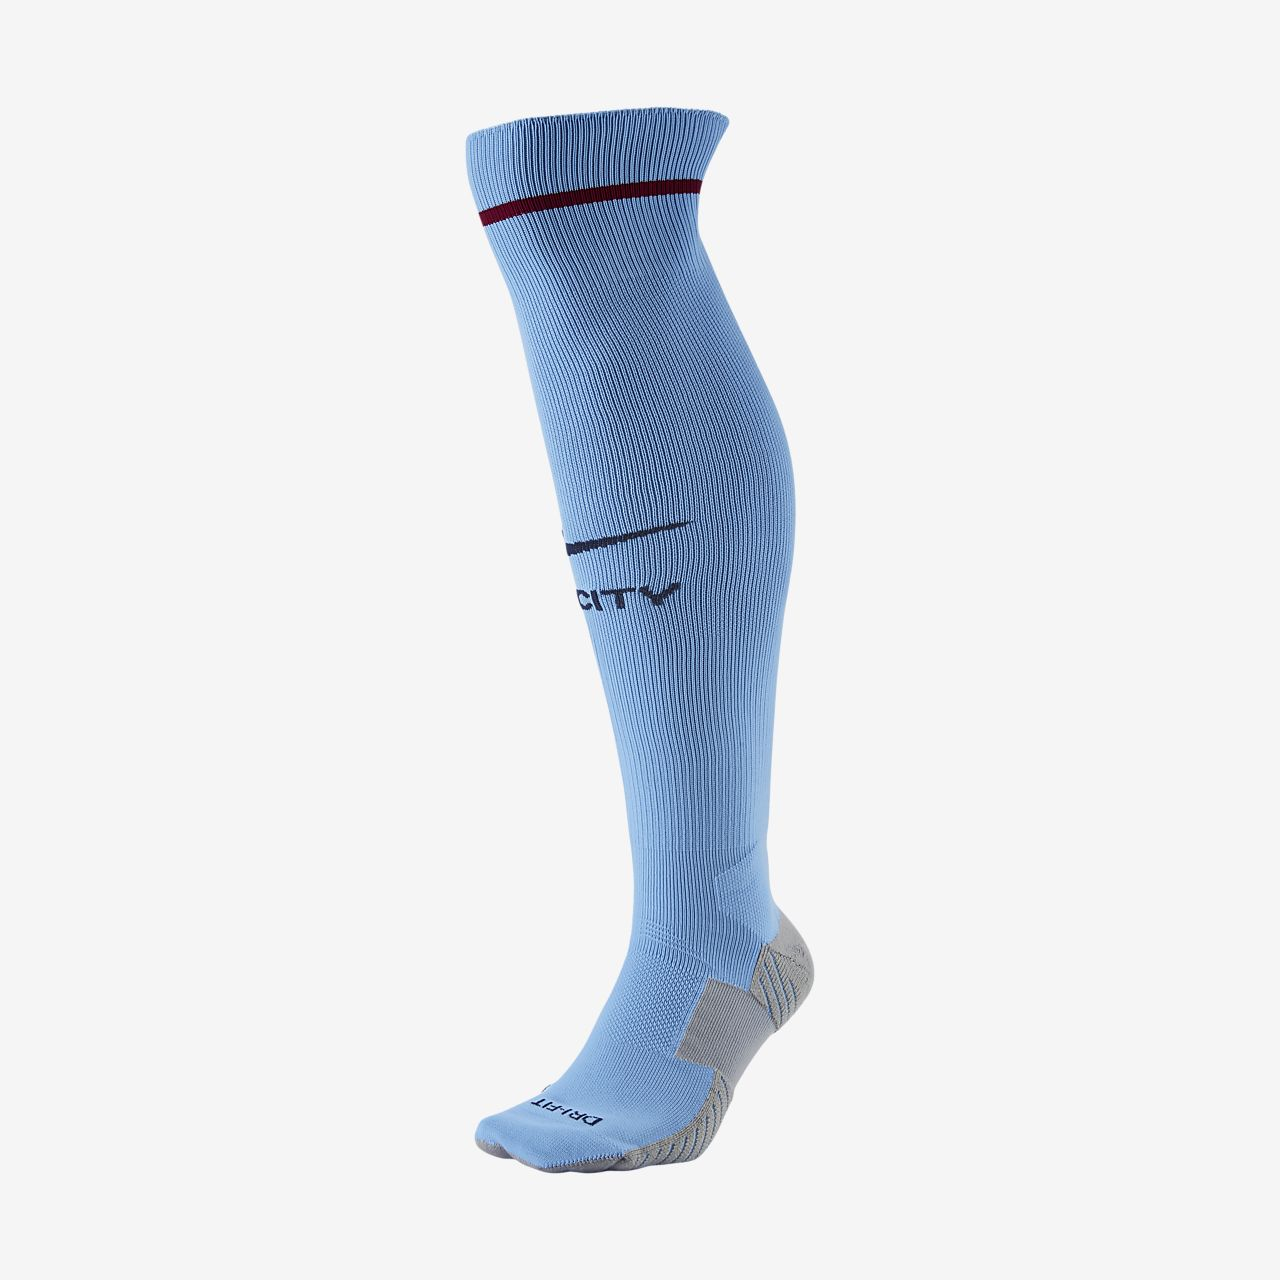 2017/18 Manchester City FC Stadium Home/Away/Third OTC Football Socks